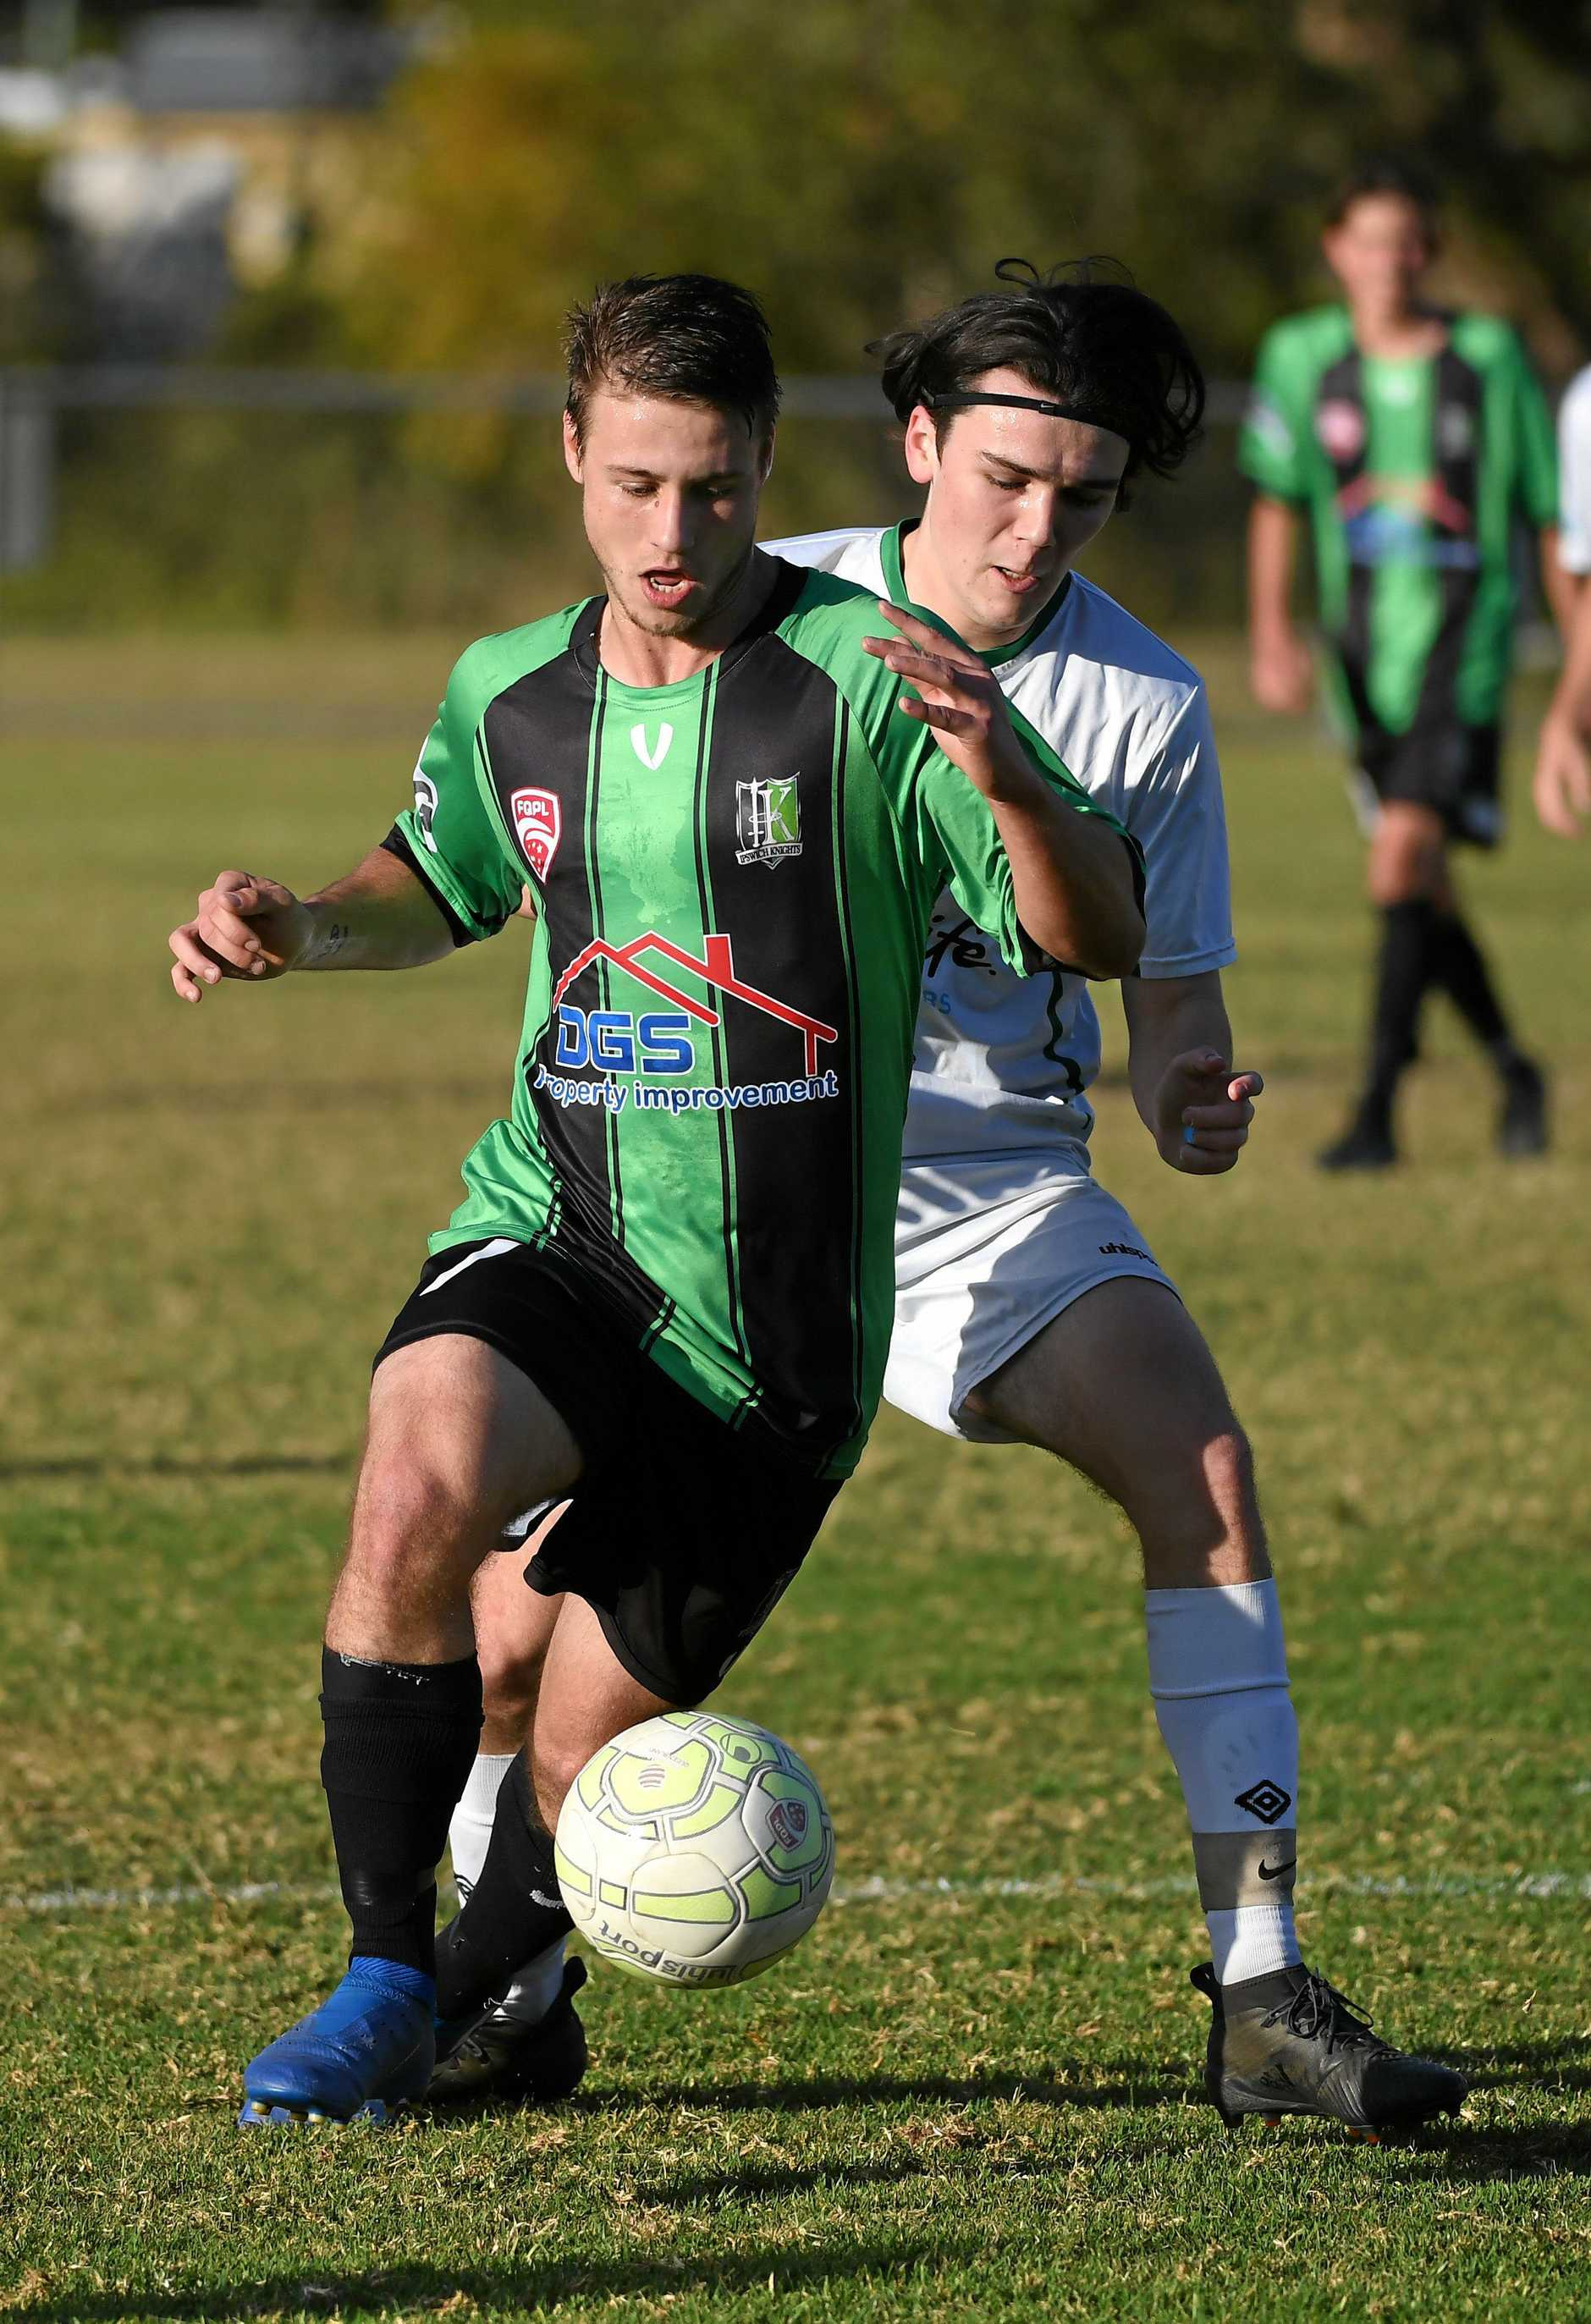 QPL U20 soccer match between Ipswich Knights and Southside Eagles played at the Ipswich Knights home ground in Bundamba. Mathew Drummond.